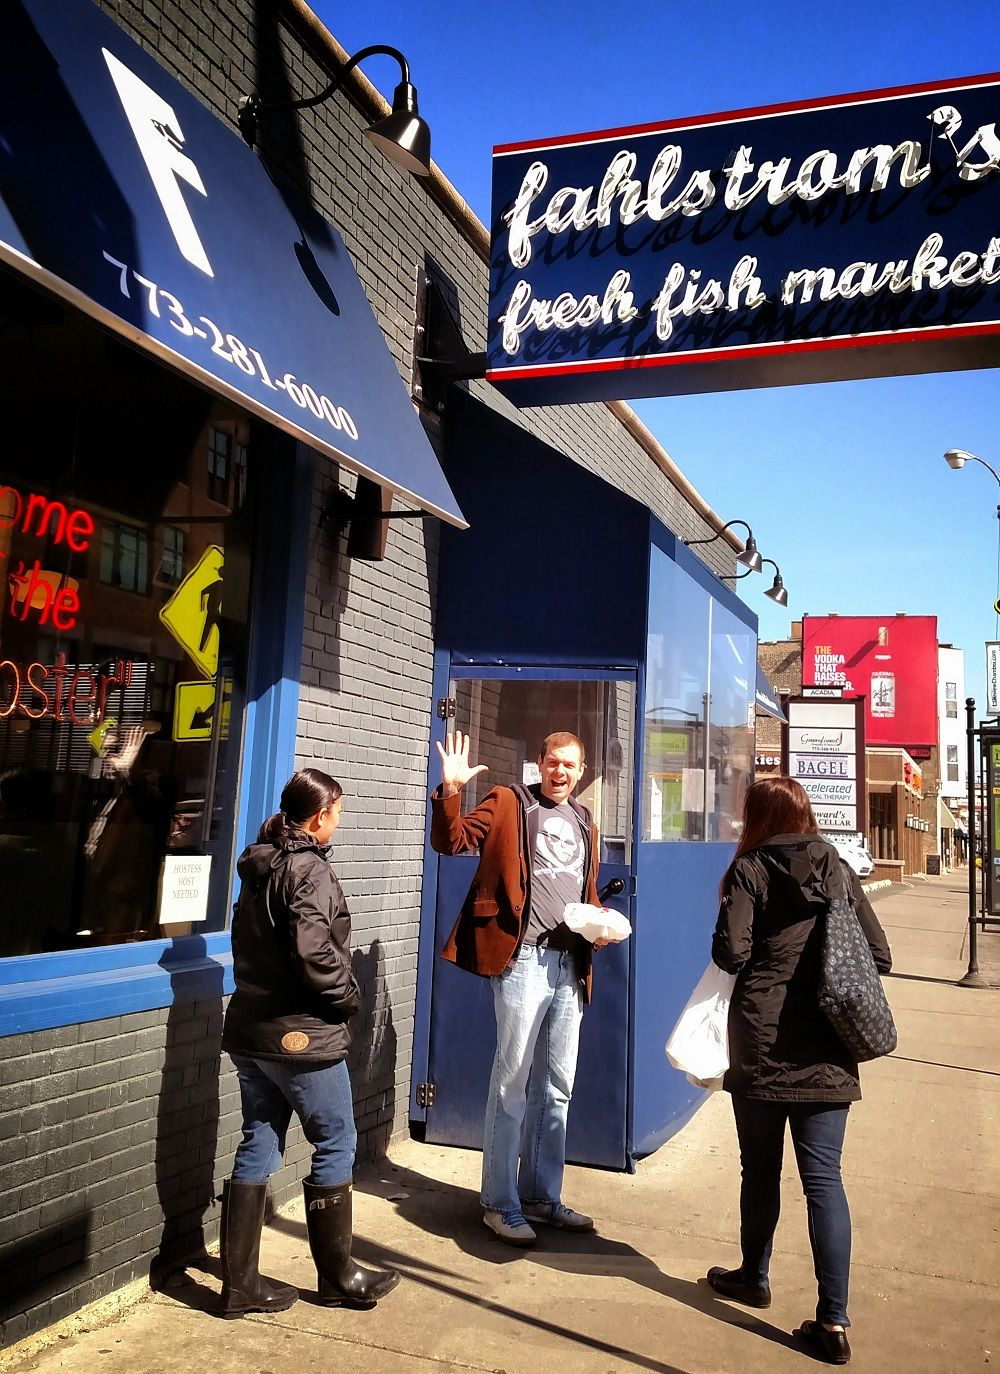 Fahlstrom S Fresh Fish Market Lakeview Chicago Fresh Fish Market Fresh Fish Specialty Food Shop